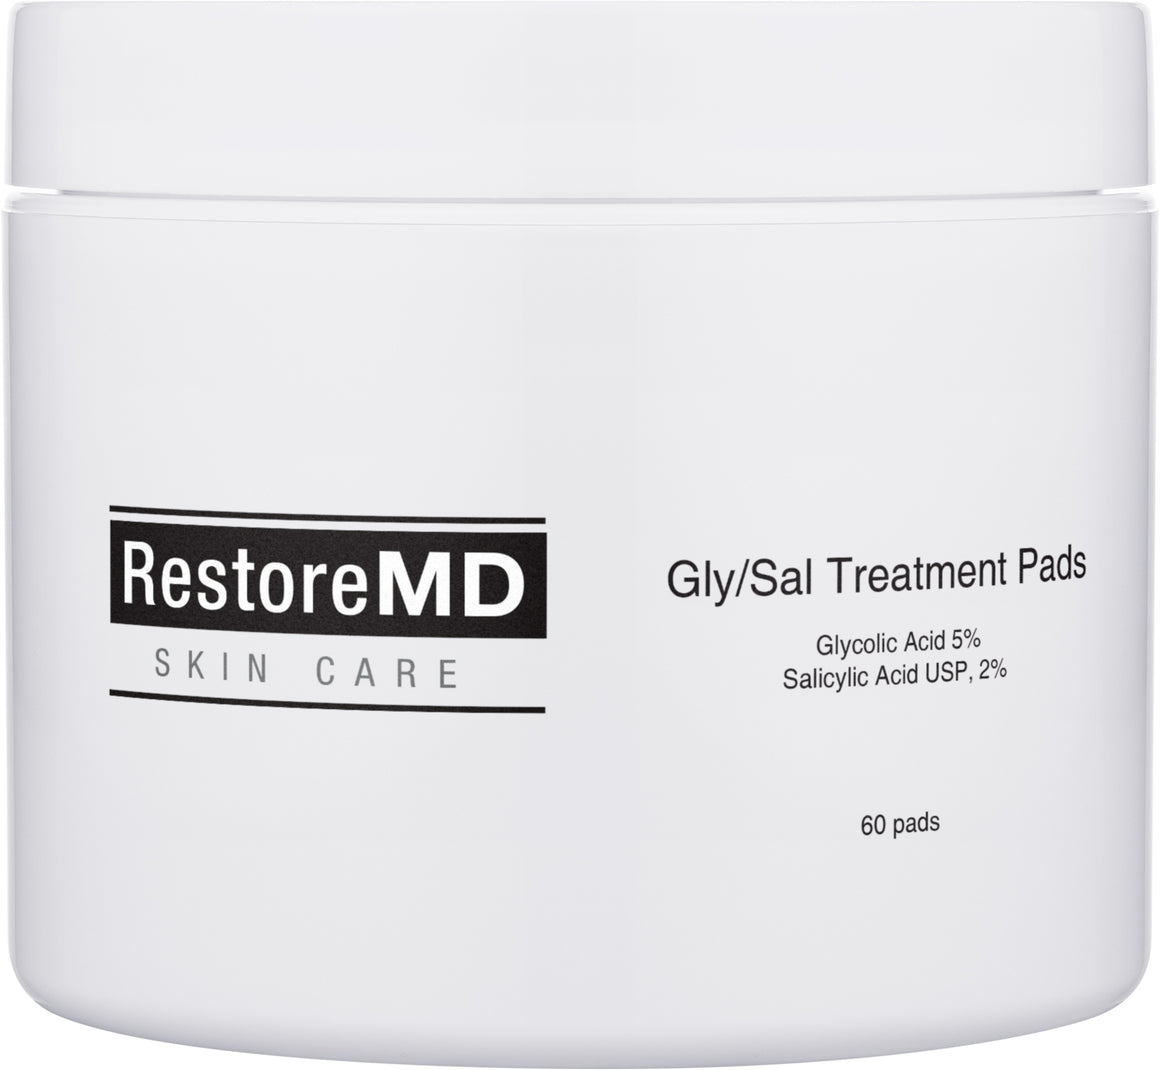 Gly/Sal Treatment Pads